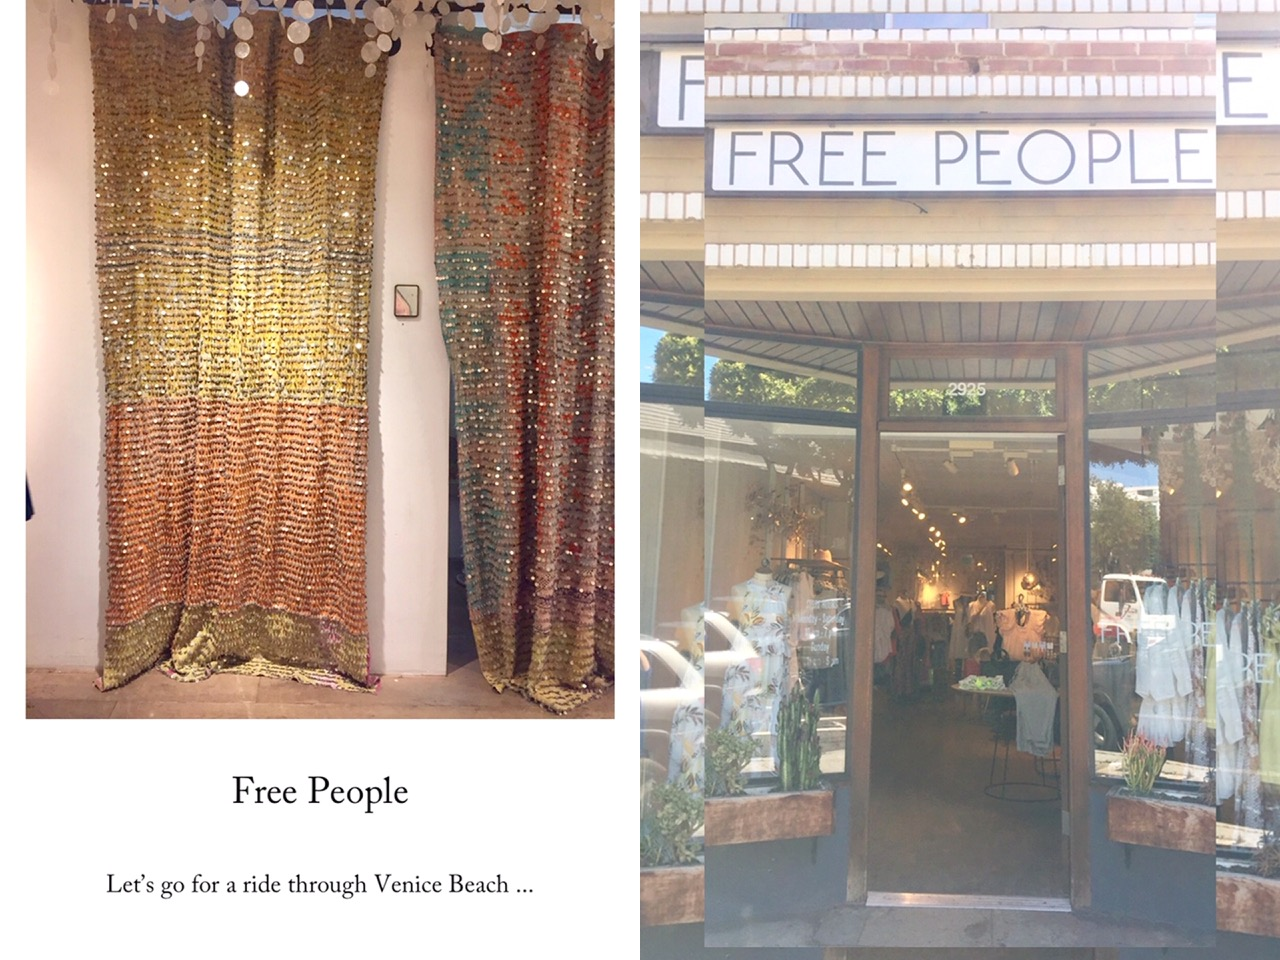 general store,santa monica,venice,free people,gjelina,restaurant,shopping,travel guide,travel,voyage,aviator nation,hamabla,tumbleweed & dandelion